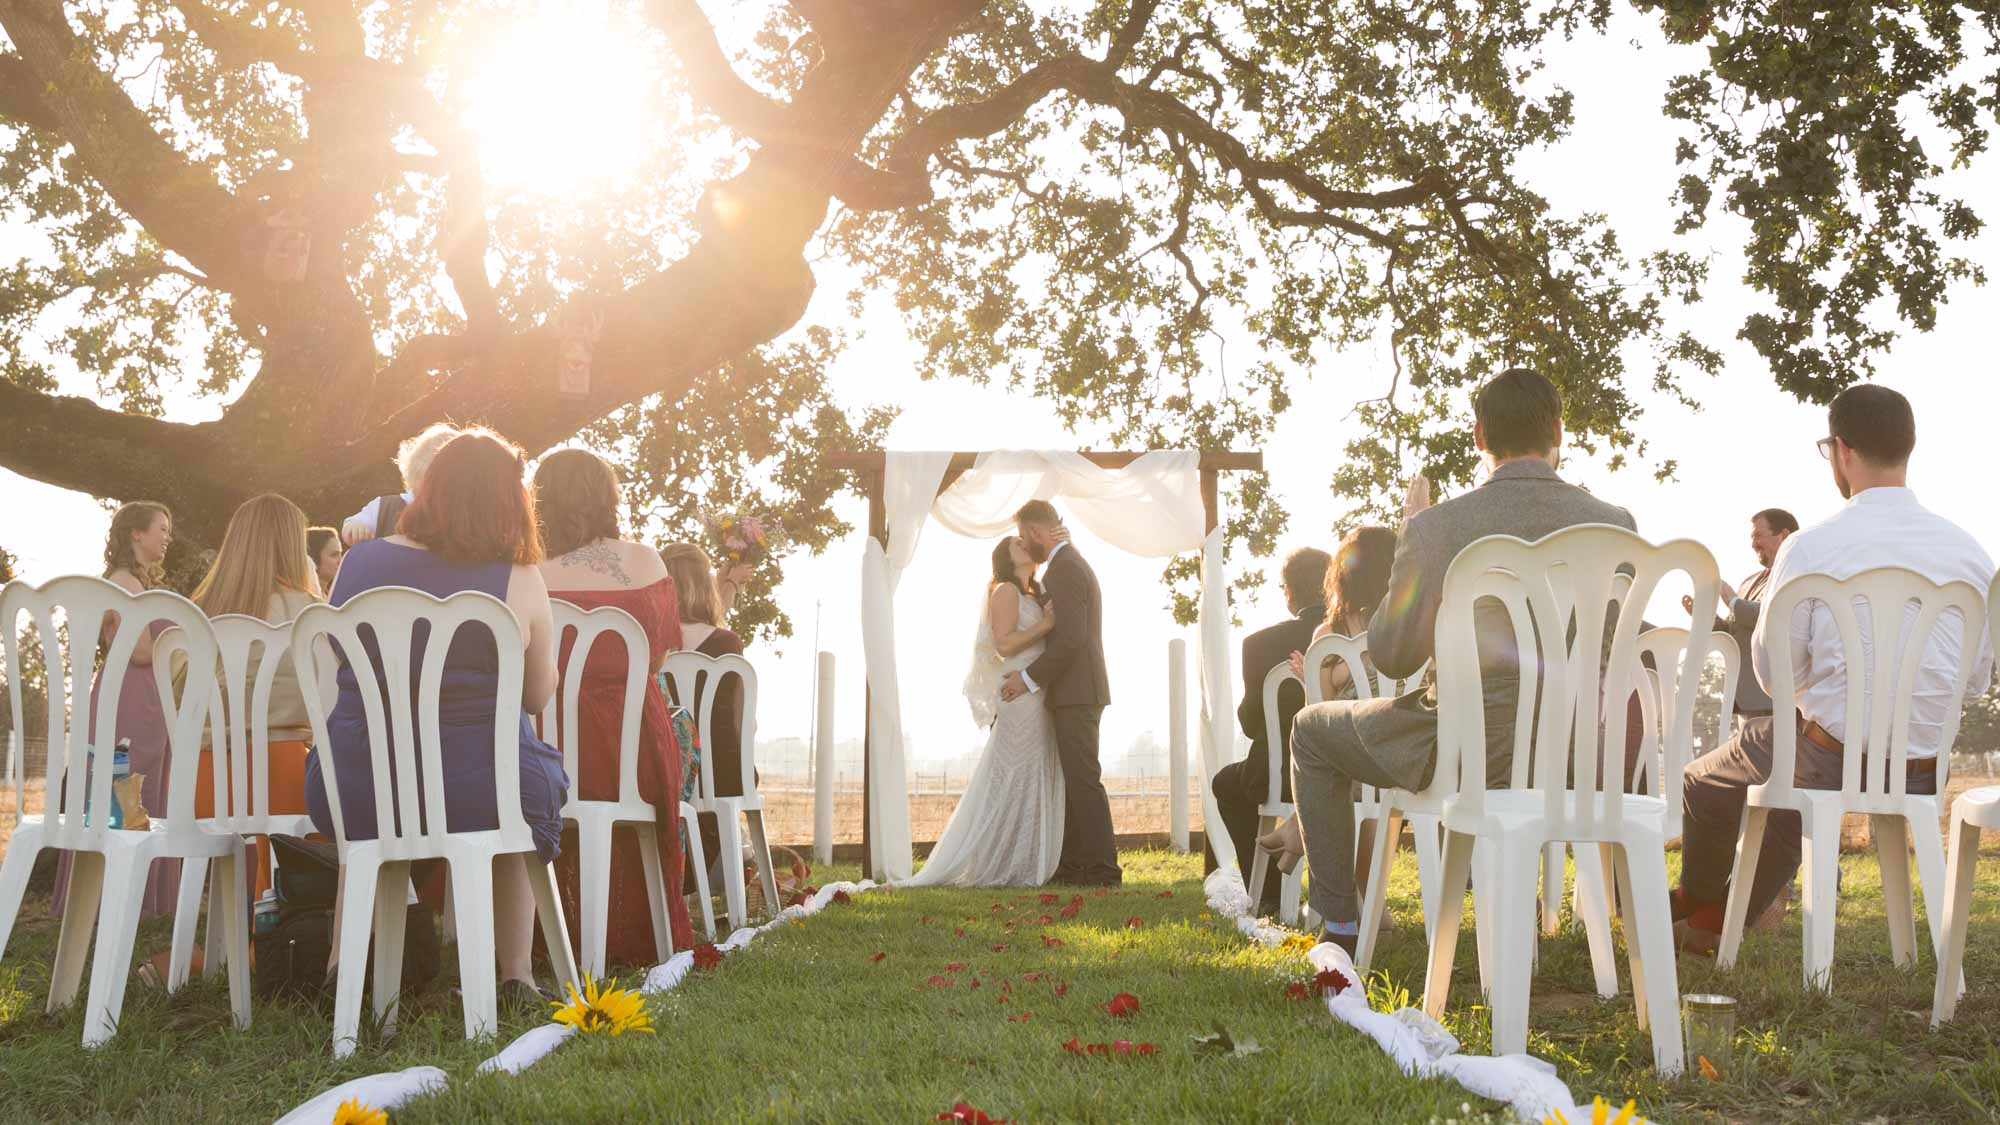 Couples kisses under an oak tree at sunset in a backyard wedding ceremony sonoma county